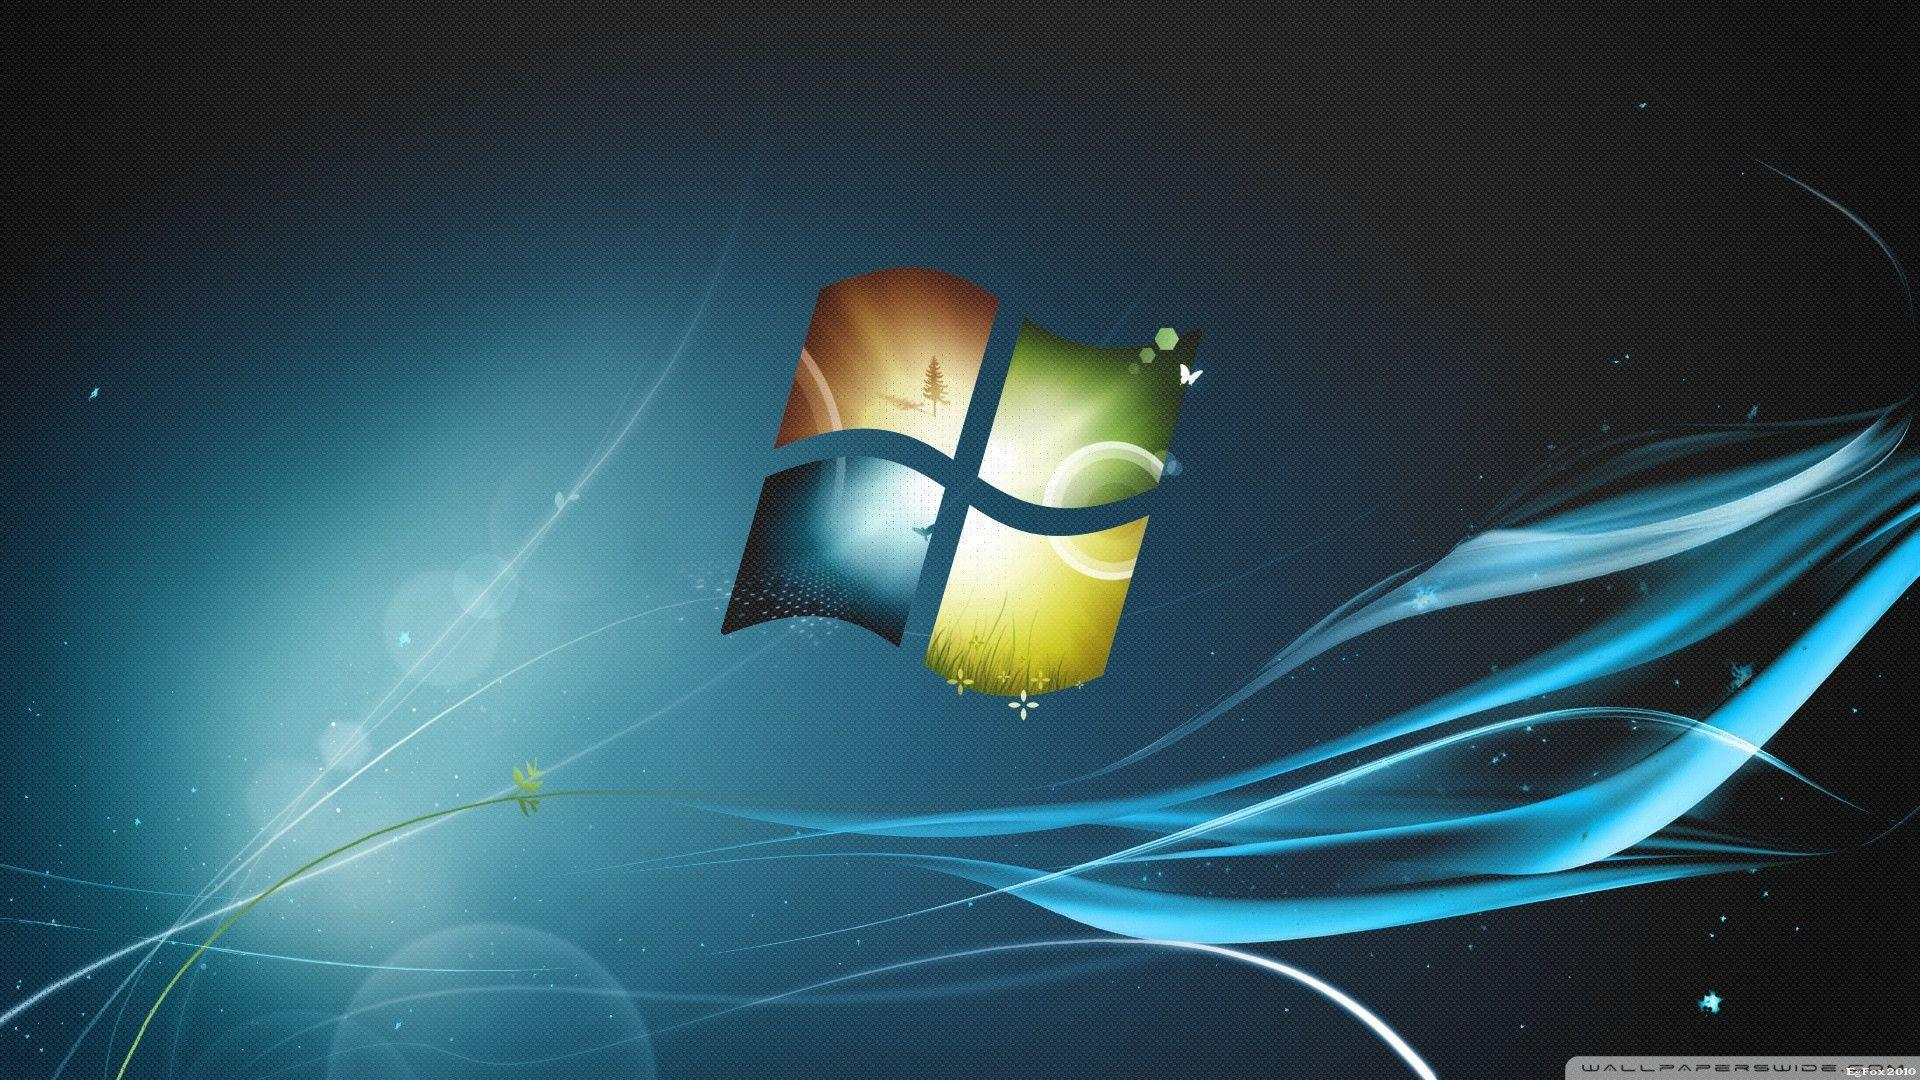 Windows 7 Wallpapers 1920x1080 Wallpaper Cave